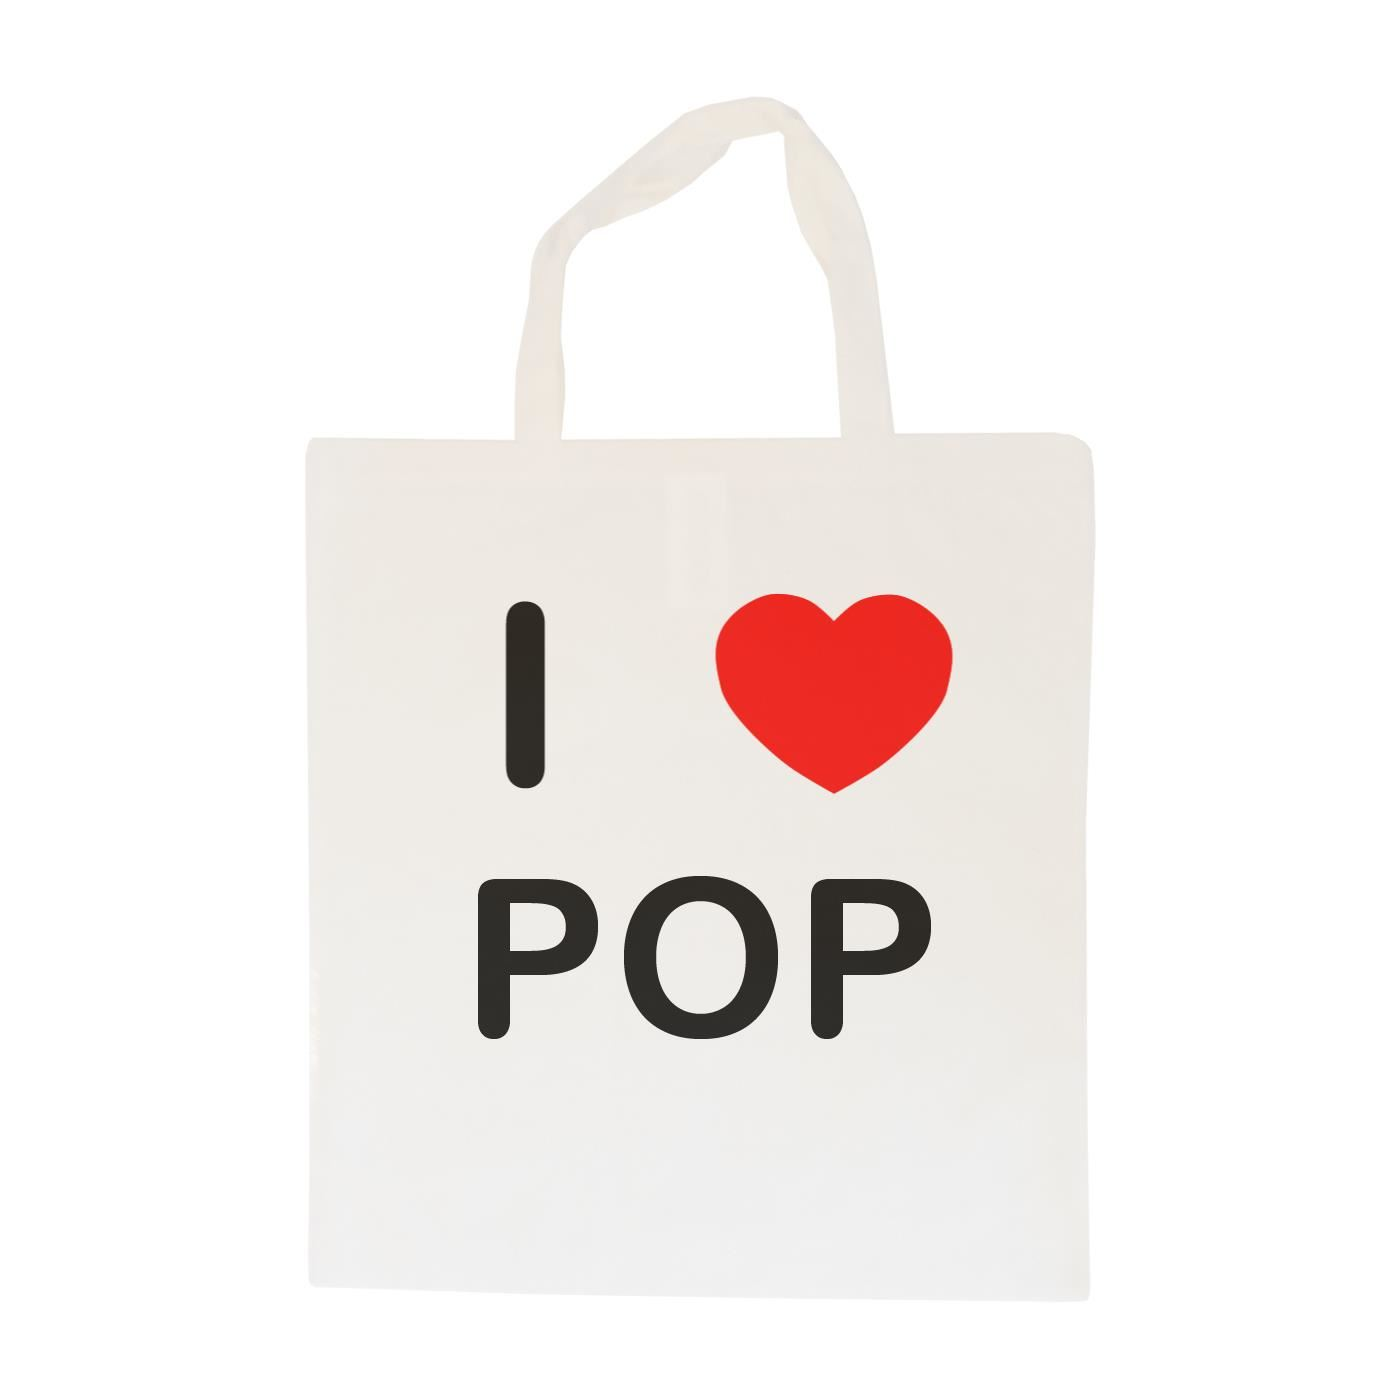 I Love Pop - Cotton Bag | Size choice Tote, Shopper or Sling